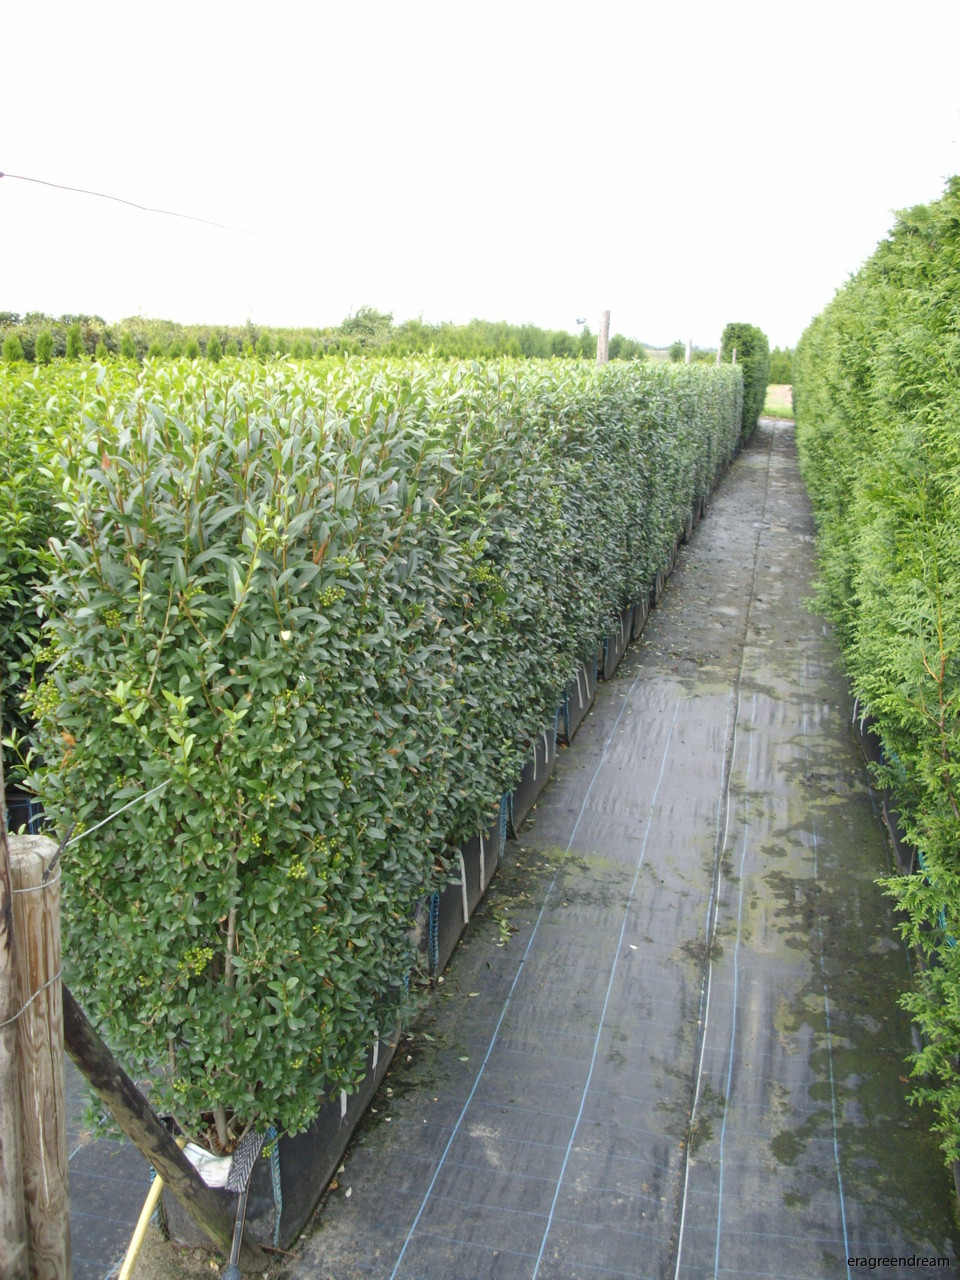 20-8-13 Ligustrum vulgaris Readybag (2)